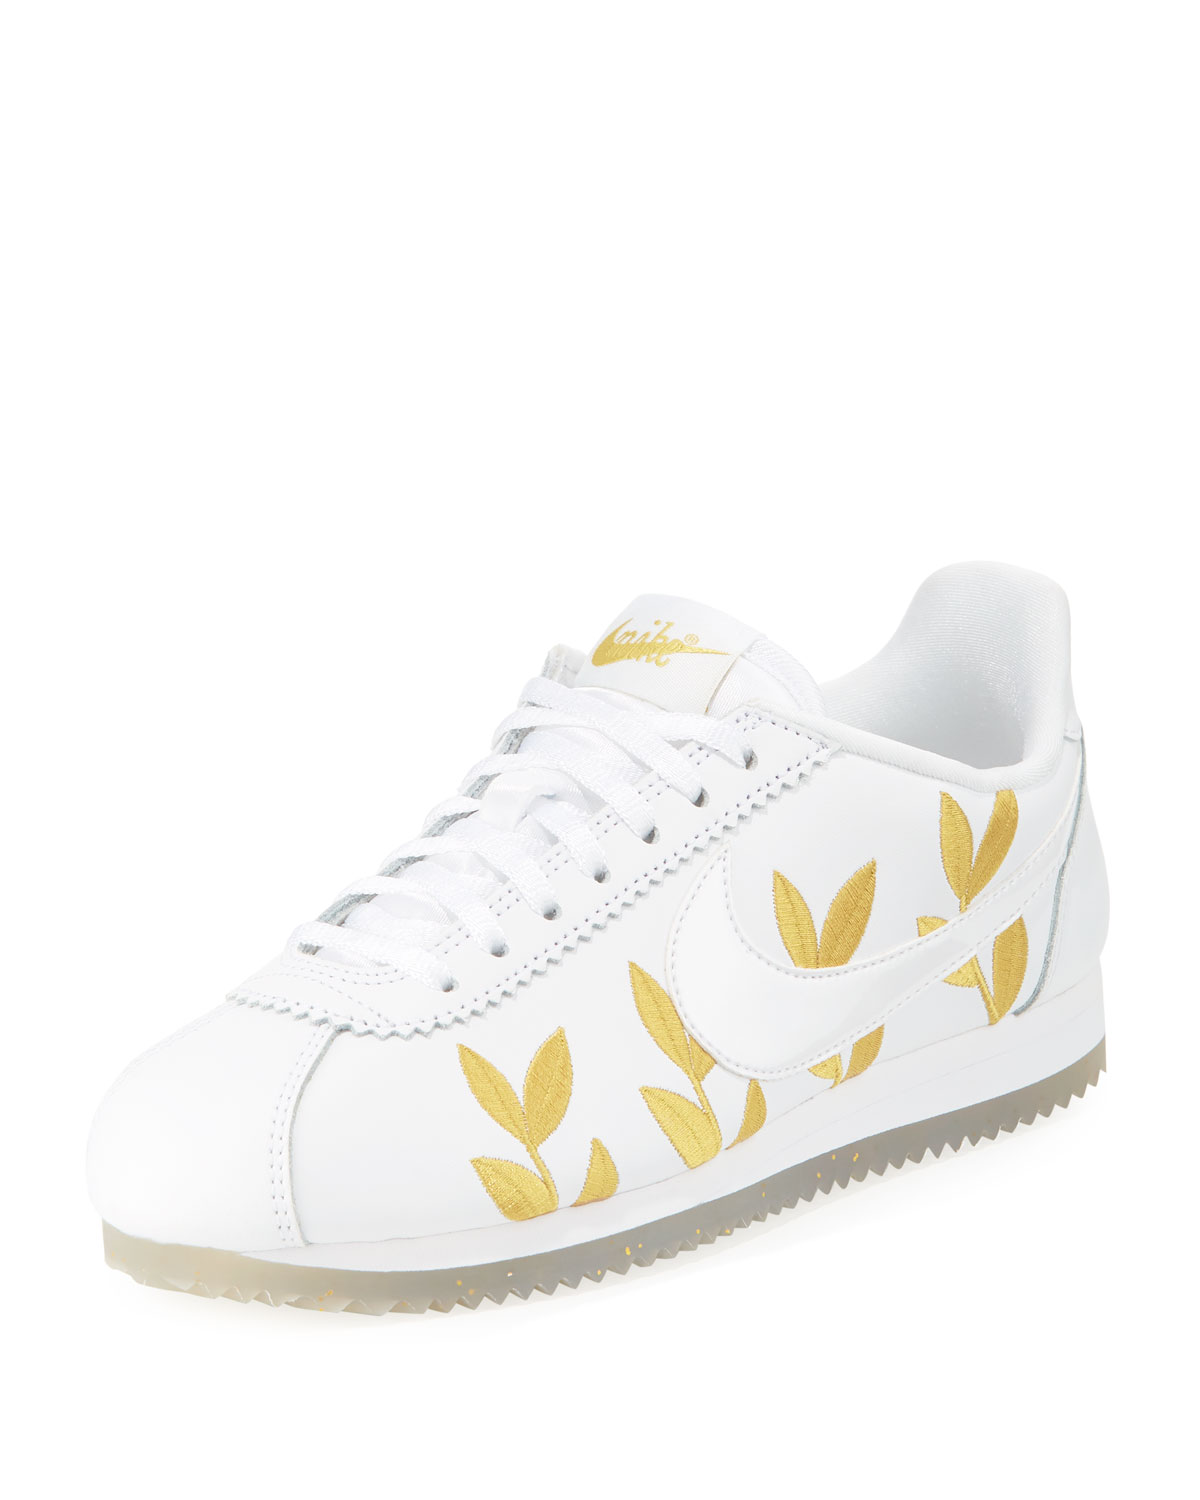 online store d396b 81868 Nike Cortez Goddess Of Victory Sneakers